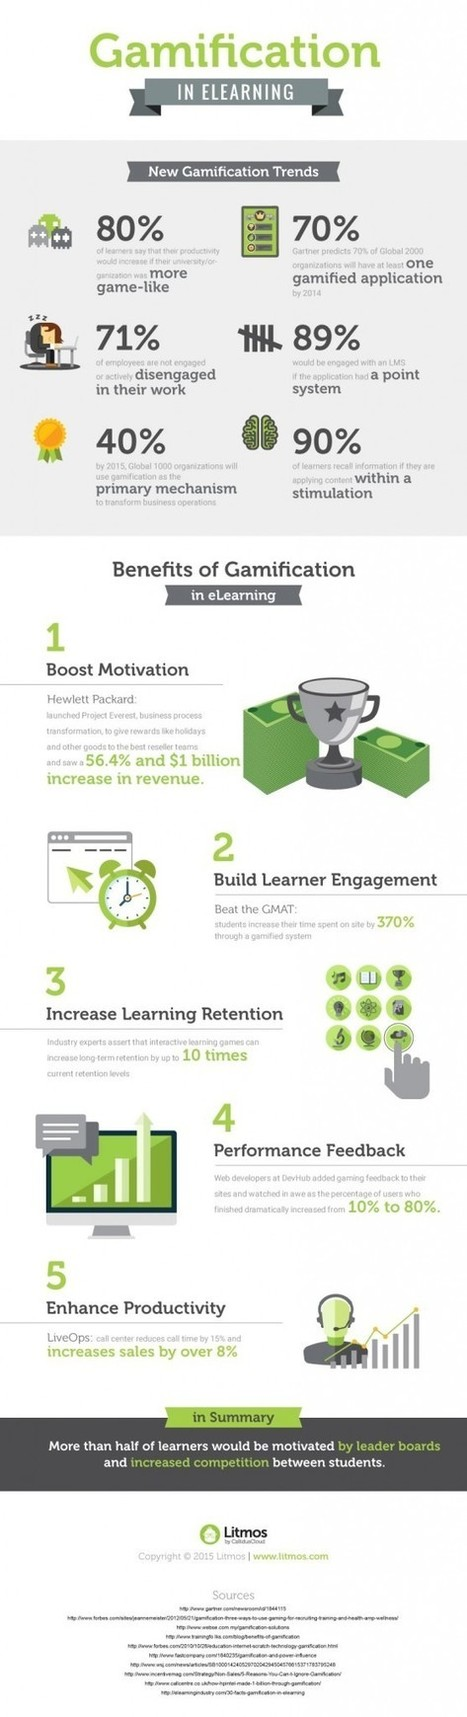 Gamification in eLearning Infographic | Linking Literacy & Learning: Research, Reflection, and Practice | Scoop.it